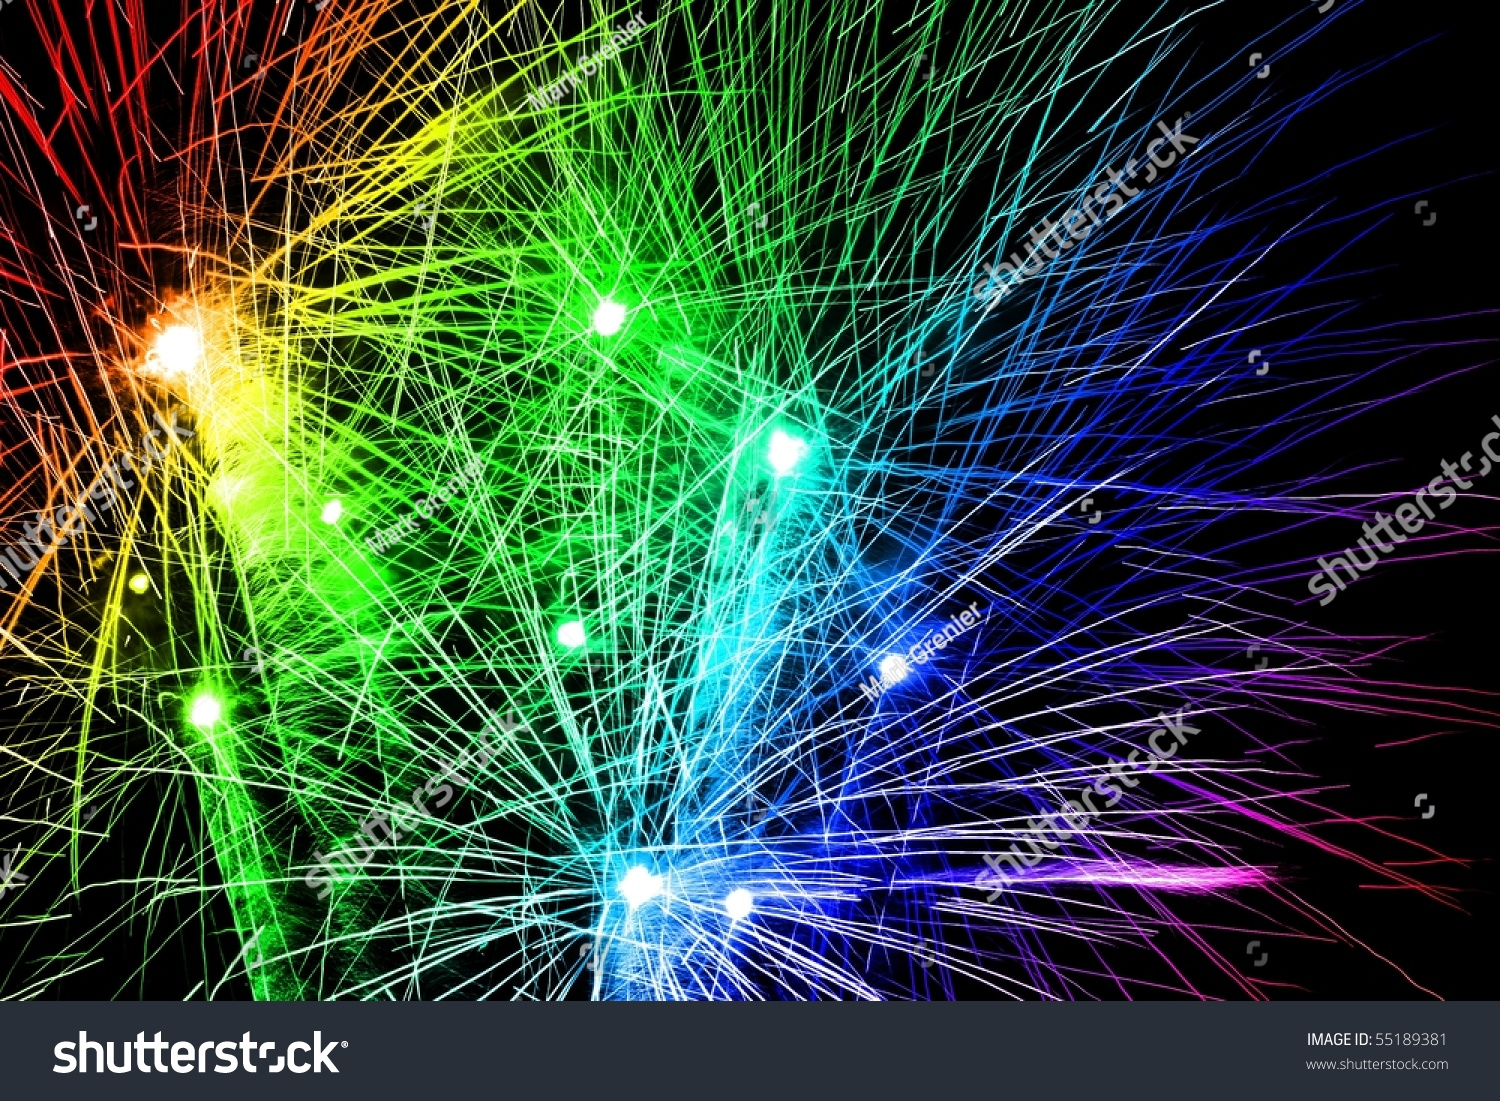 Rainbow Fireworks Wallpaper Pictures to Pin on Pinterest - PinsDaddy